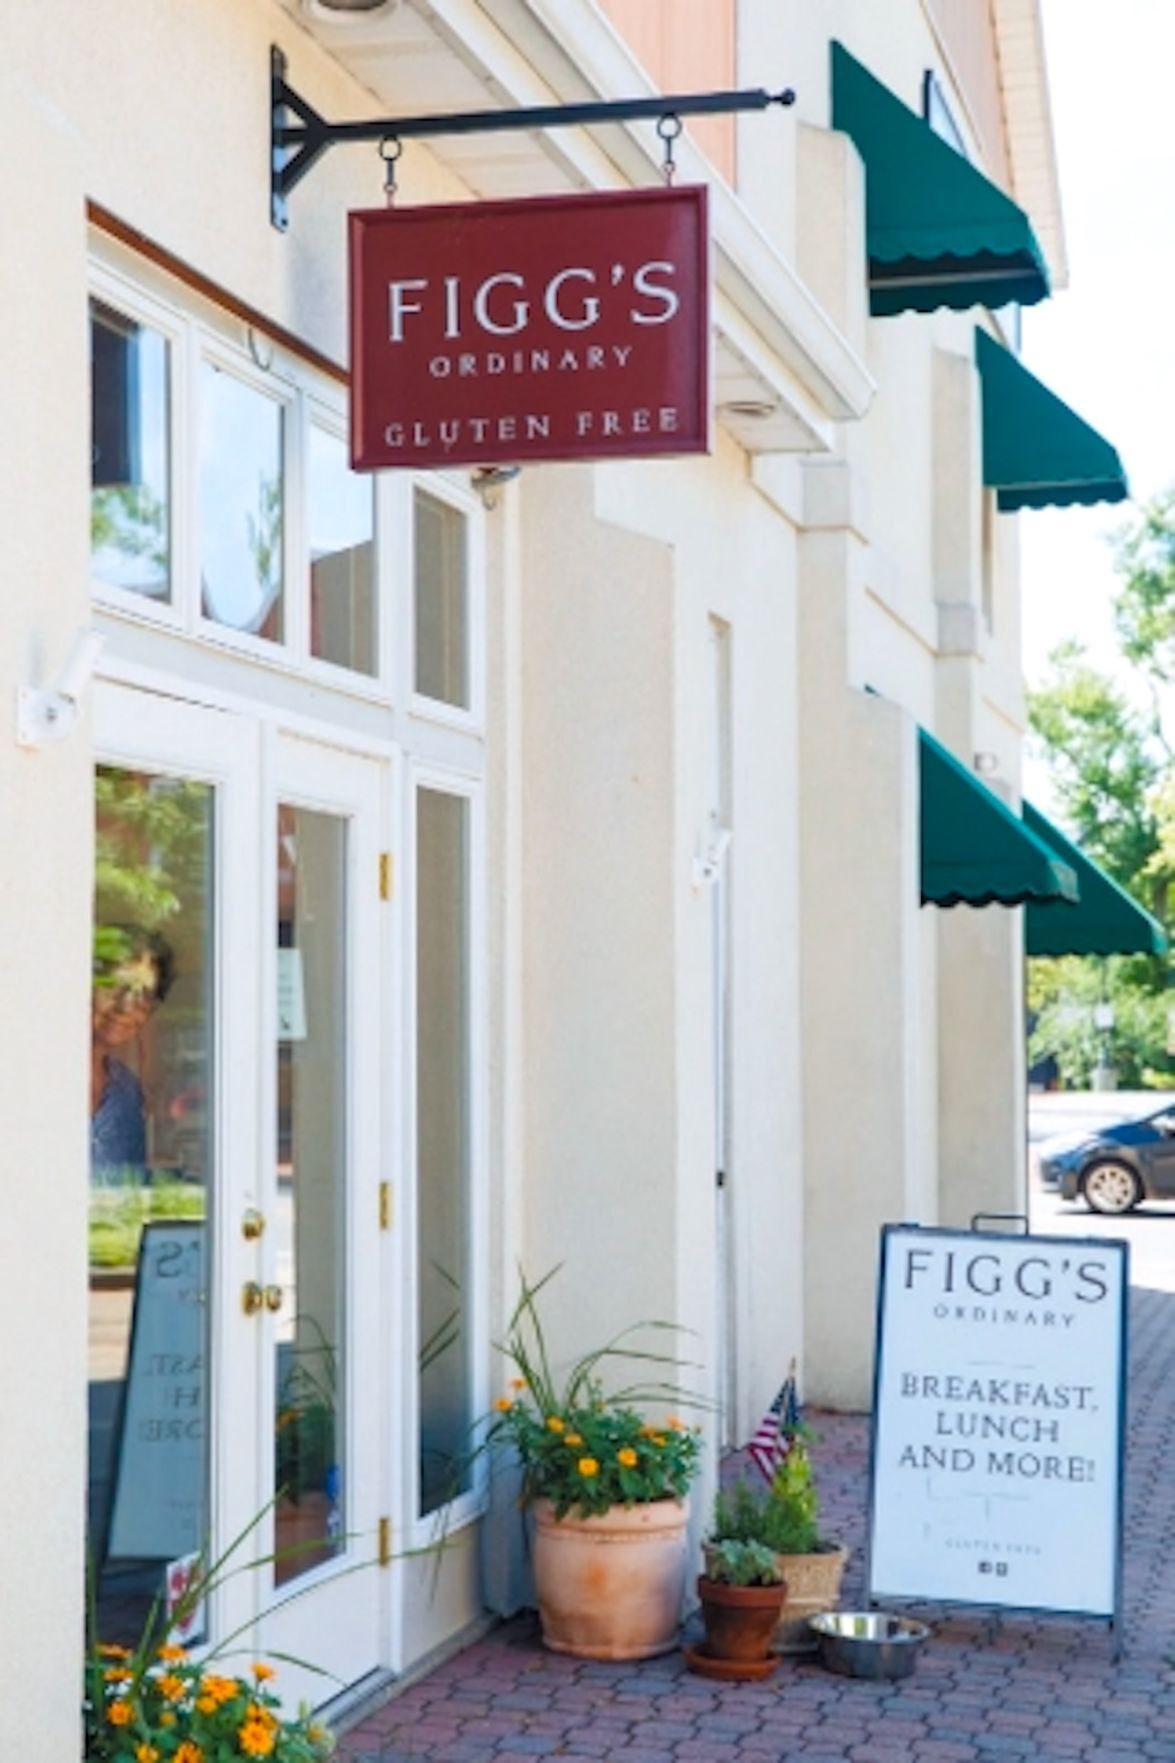 Figg's Ordinary earns national 'HartBeat of Main Street' grant